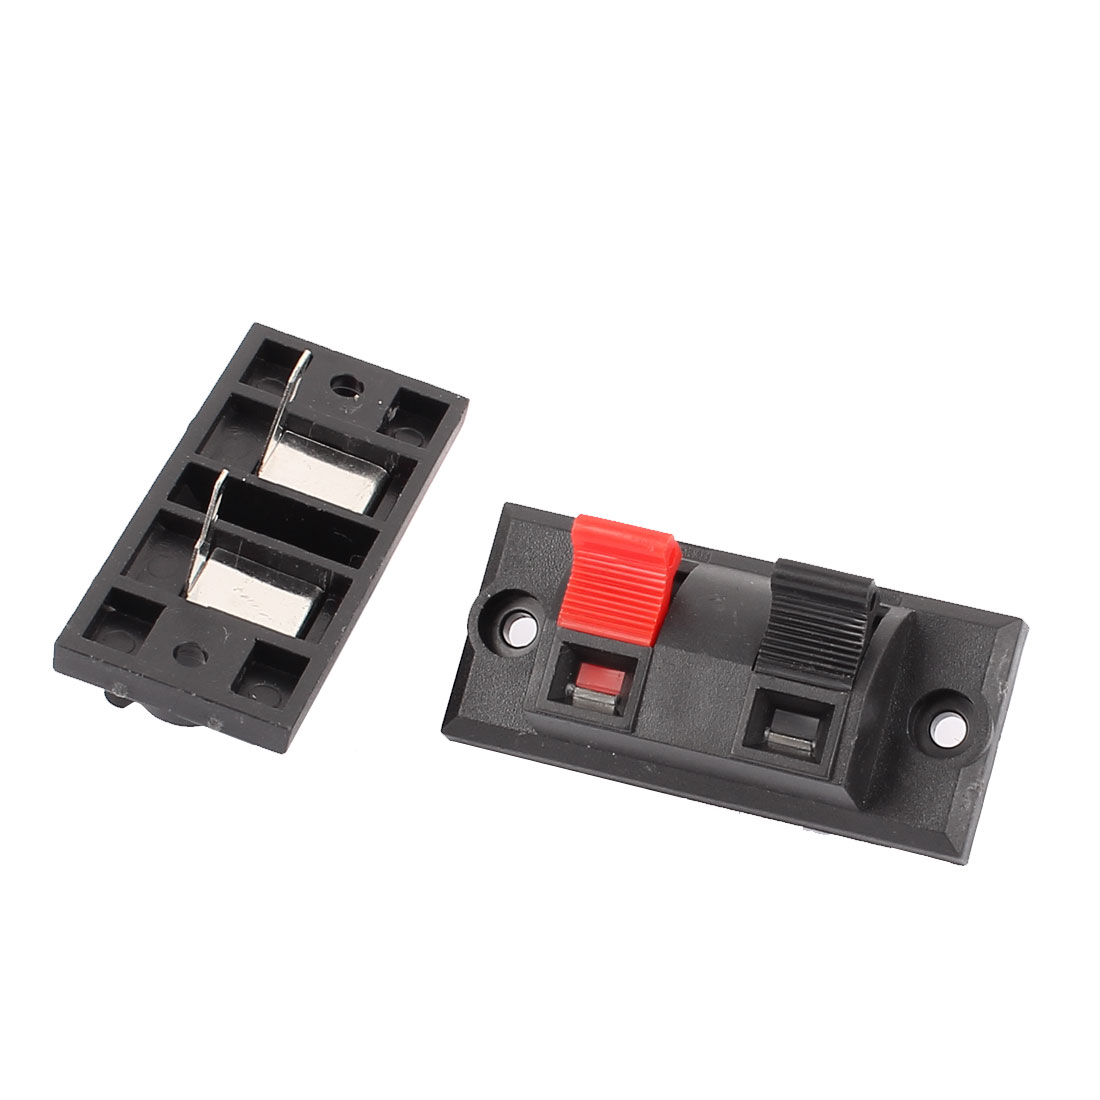 2Pcs 2 Way Jack Socket Spring Push Release Connector Speaker Terminal Block